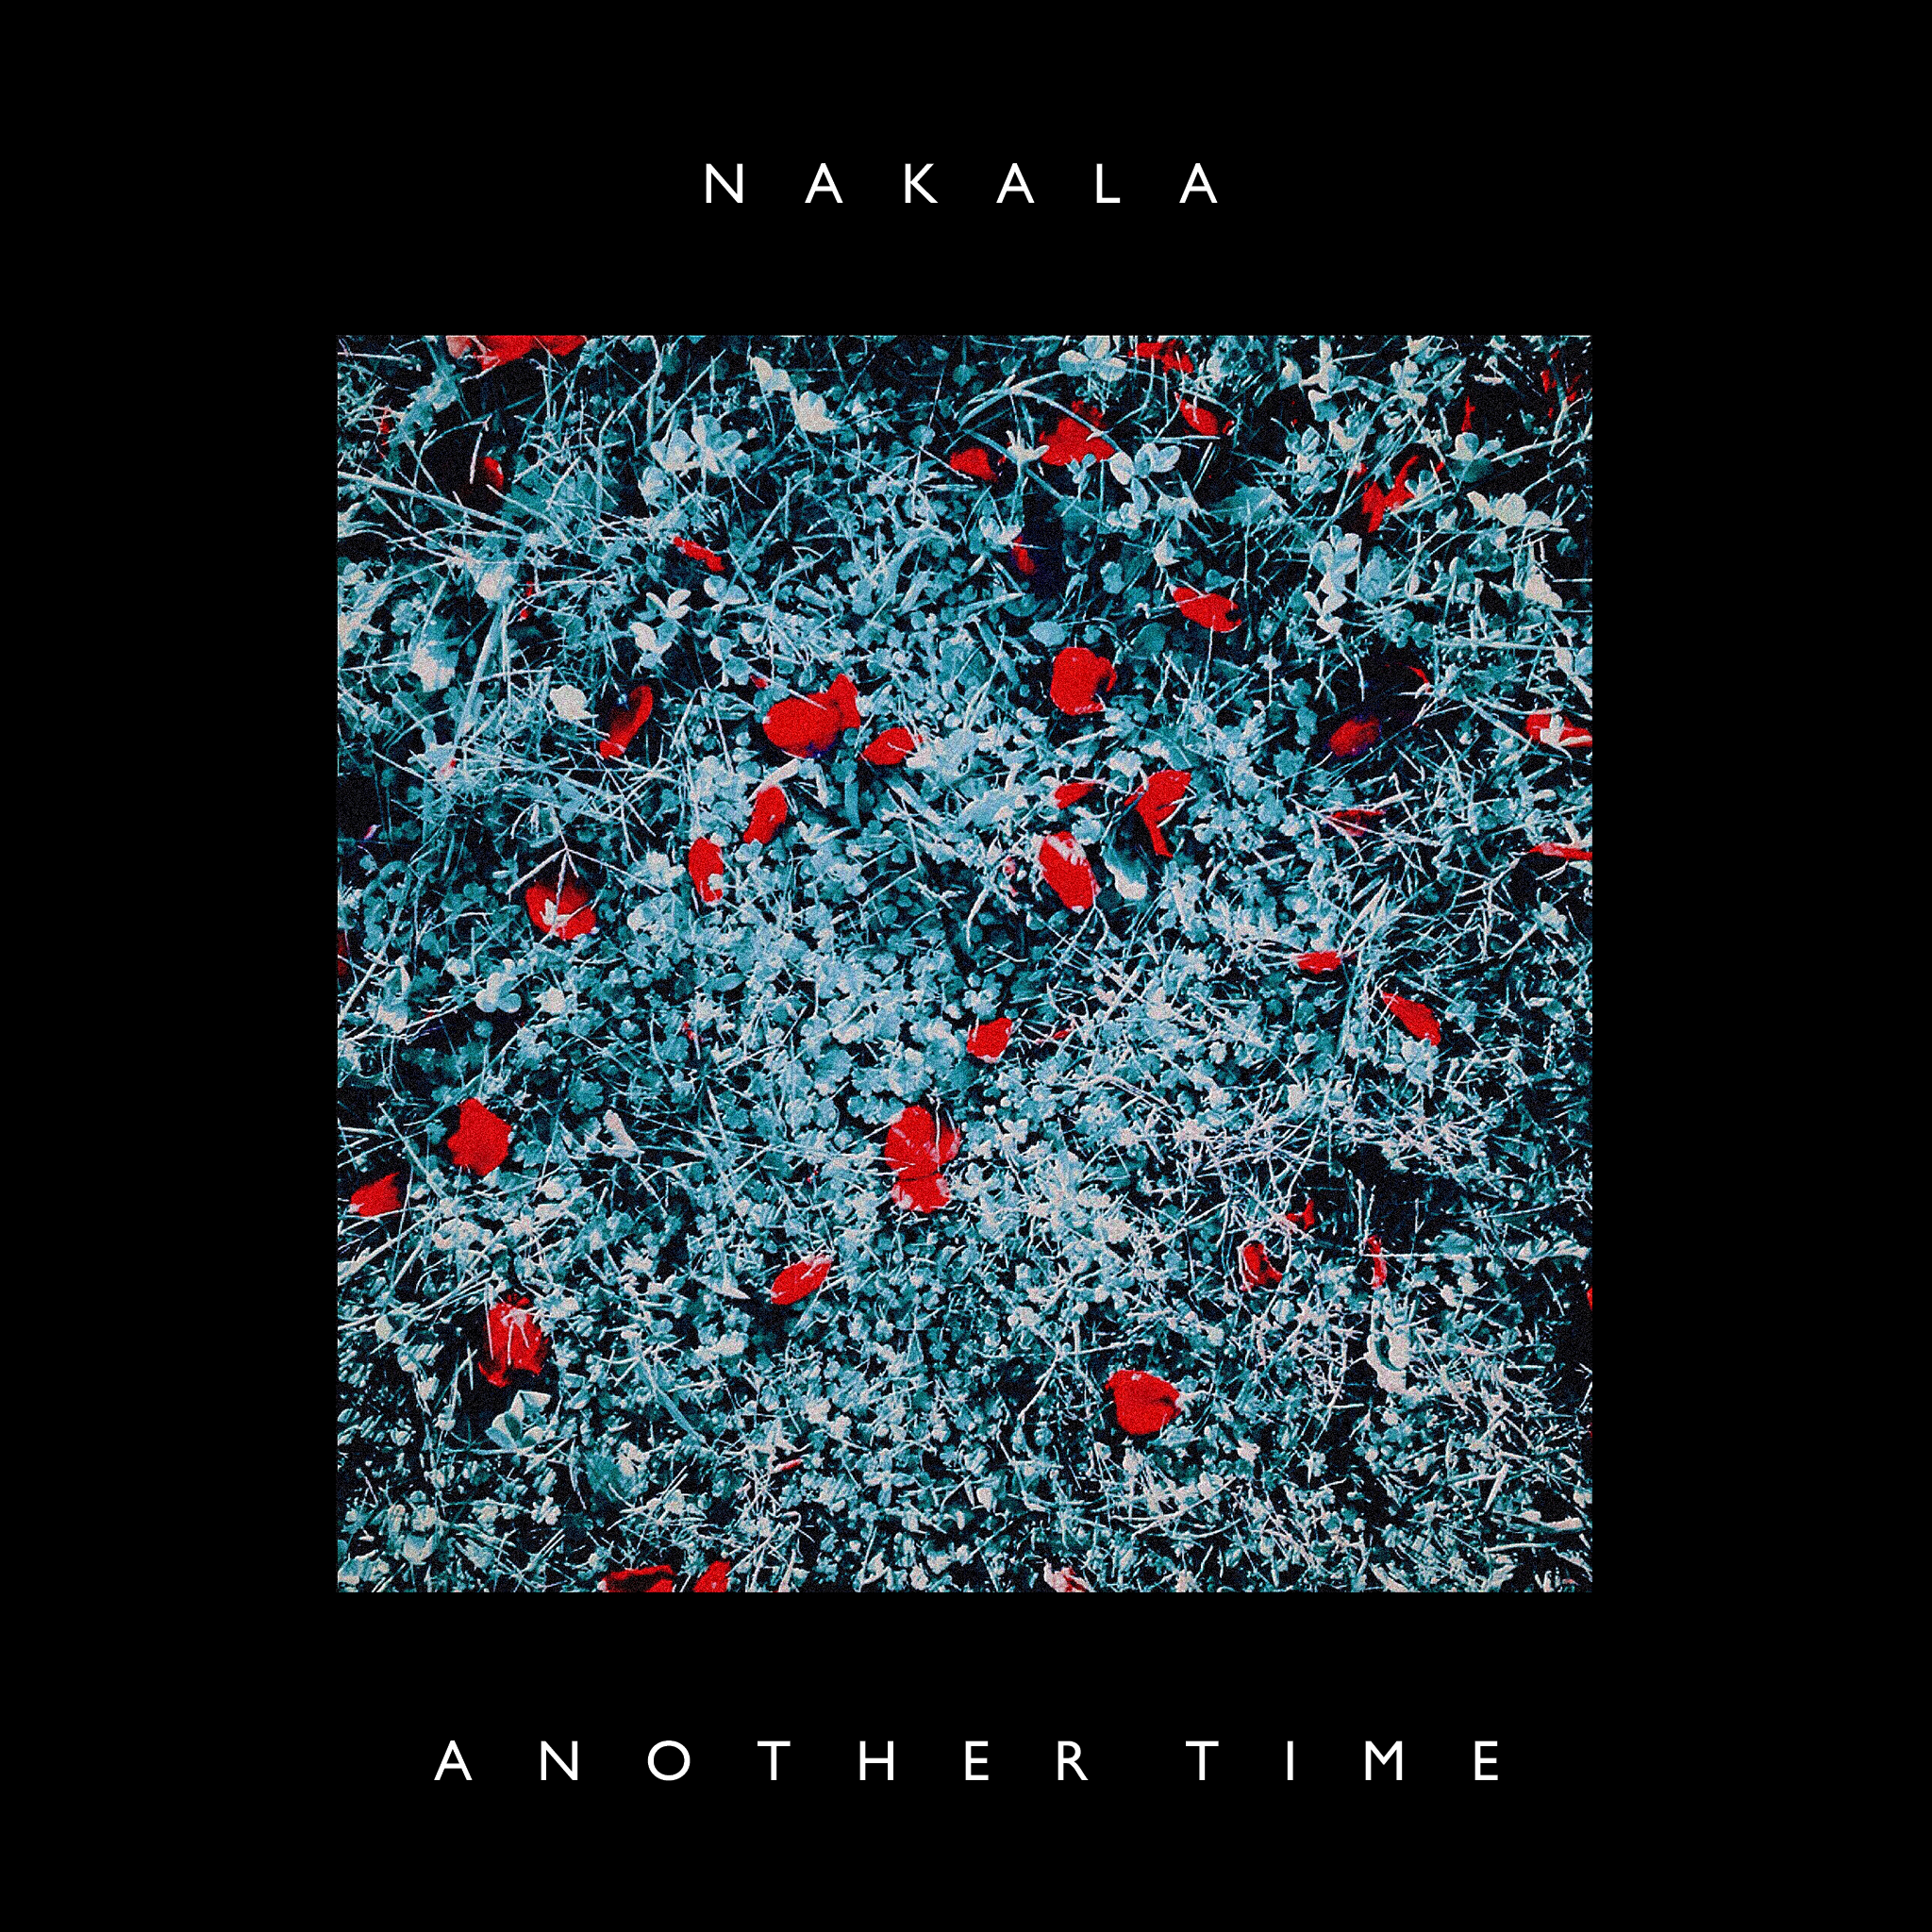 nakala anothertime artwork final (2).png